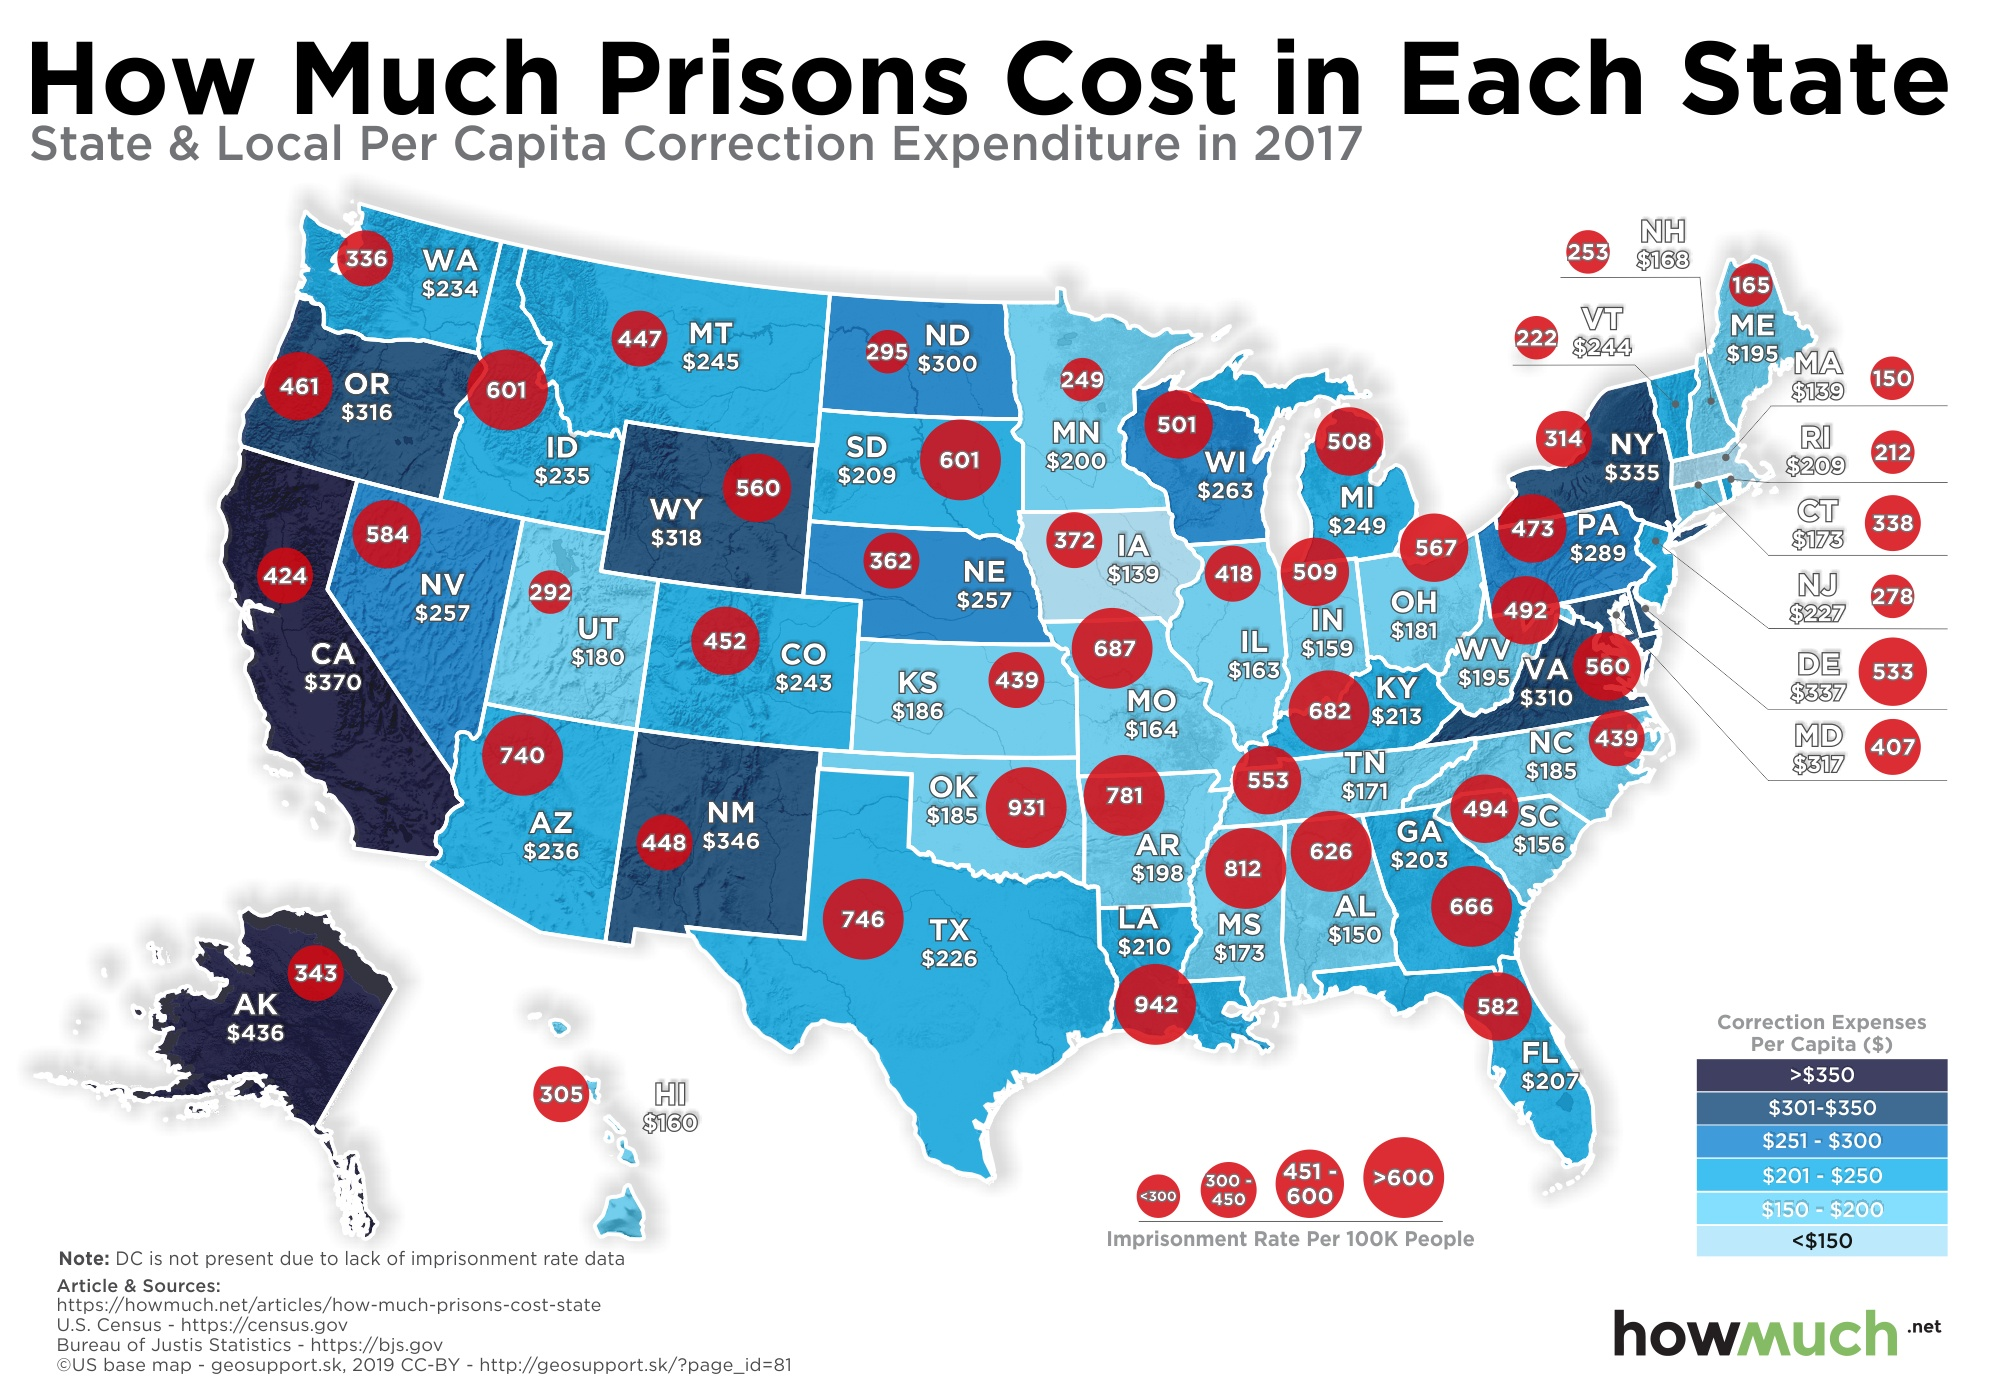 Visualizing How Much Prisons Cost in Each State